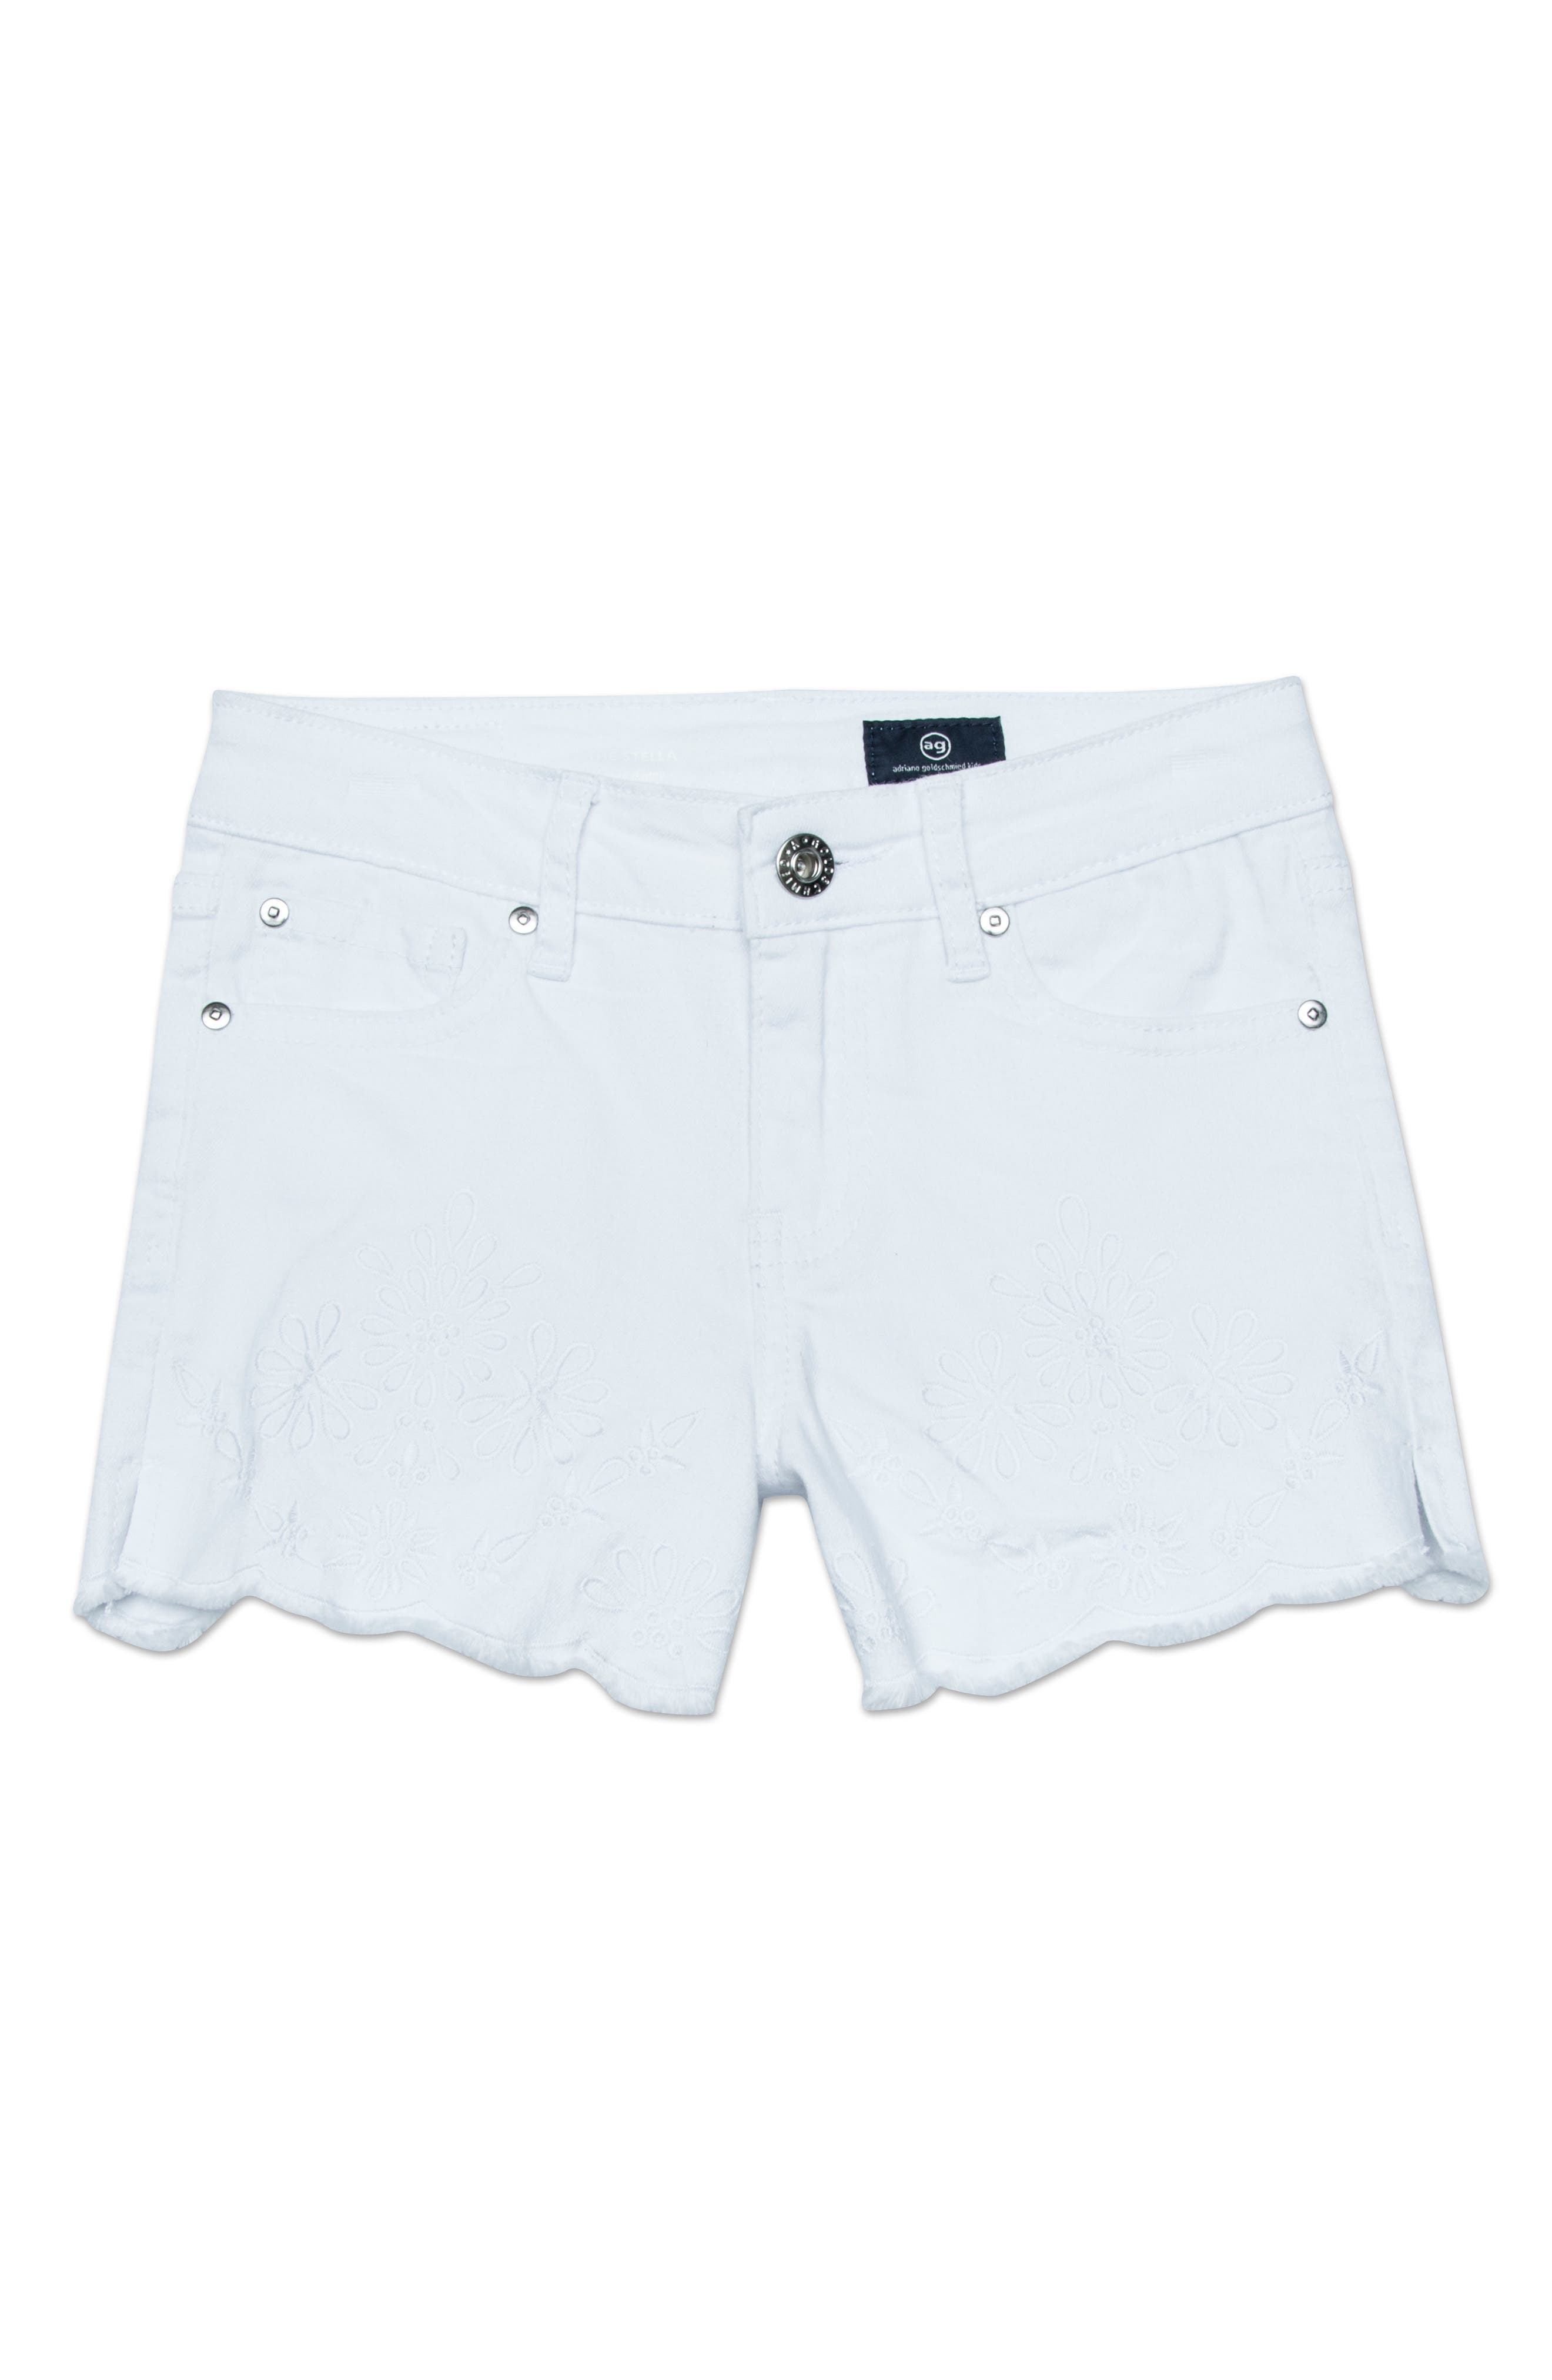 adriano goldschmeid kids The Brooklyn Scallop Denim Shorts,                             Main thumbnail 1, color,                             White/ Coconut